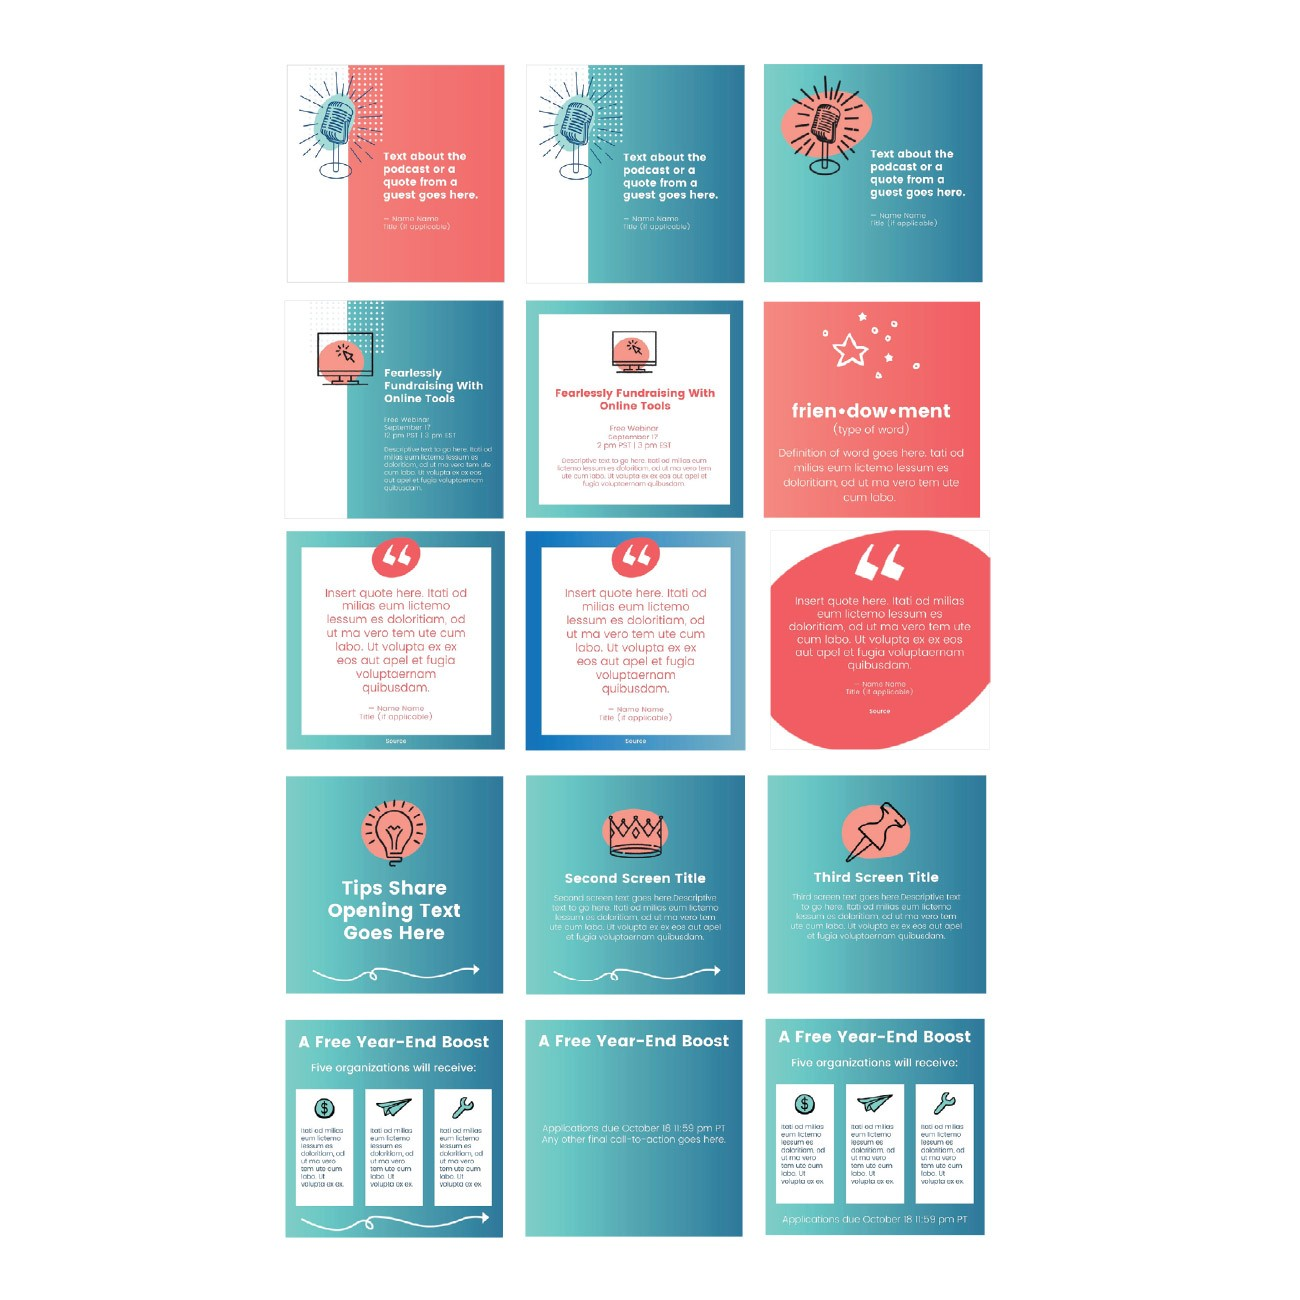 GDUSA Award-Winning Design of Social Media Templates for Good Ways, Inc.